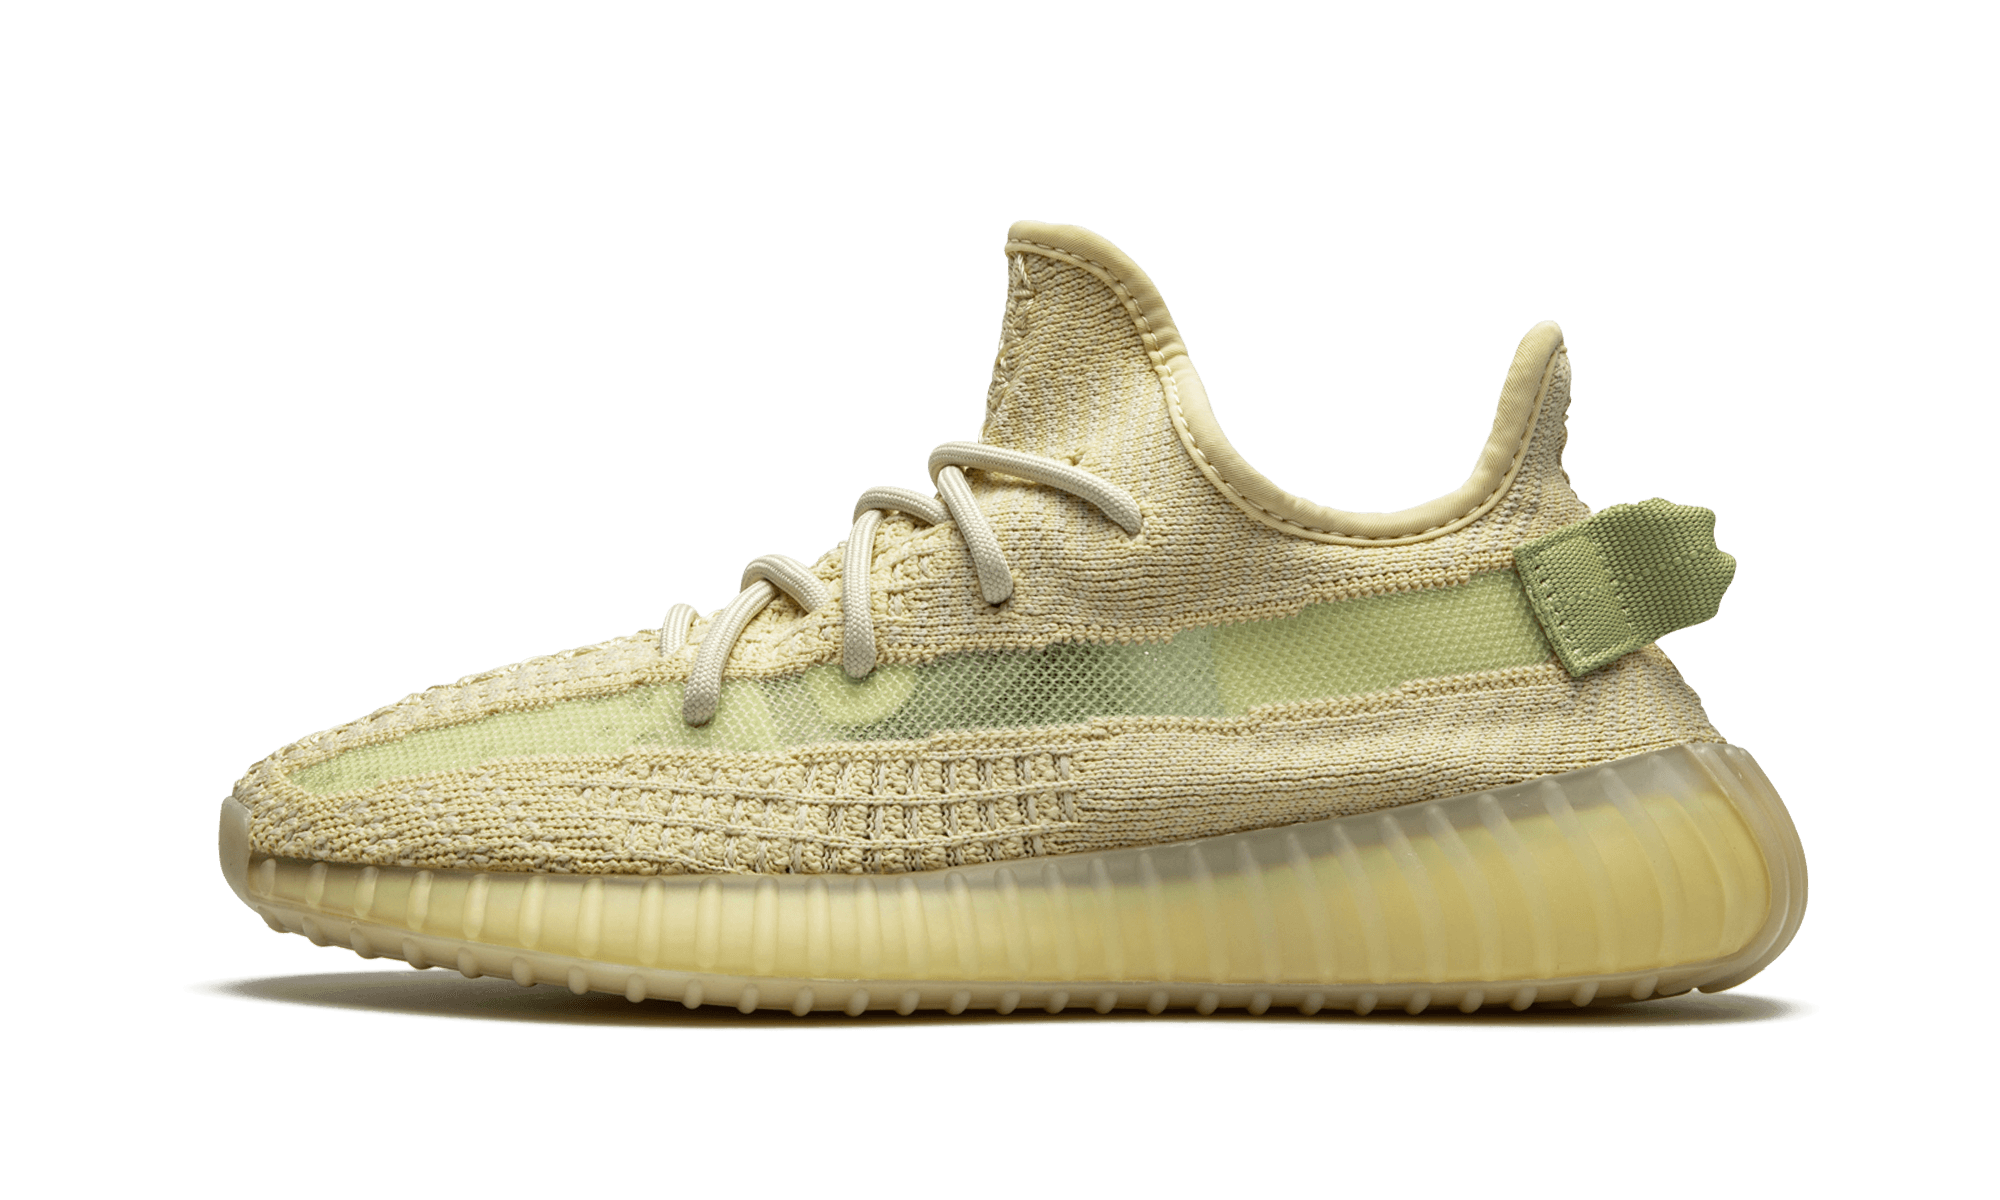 Buy New Adidas Yeezy Boost 350 V2 Flax sneakers